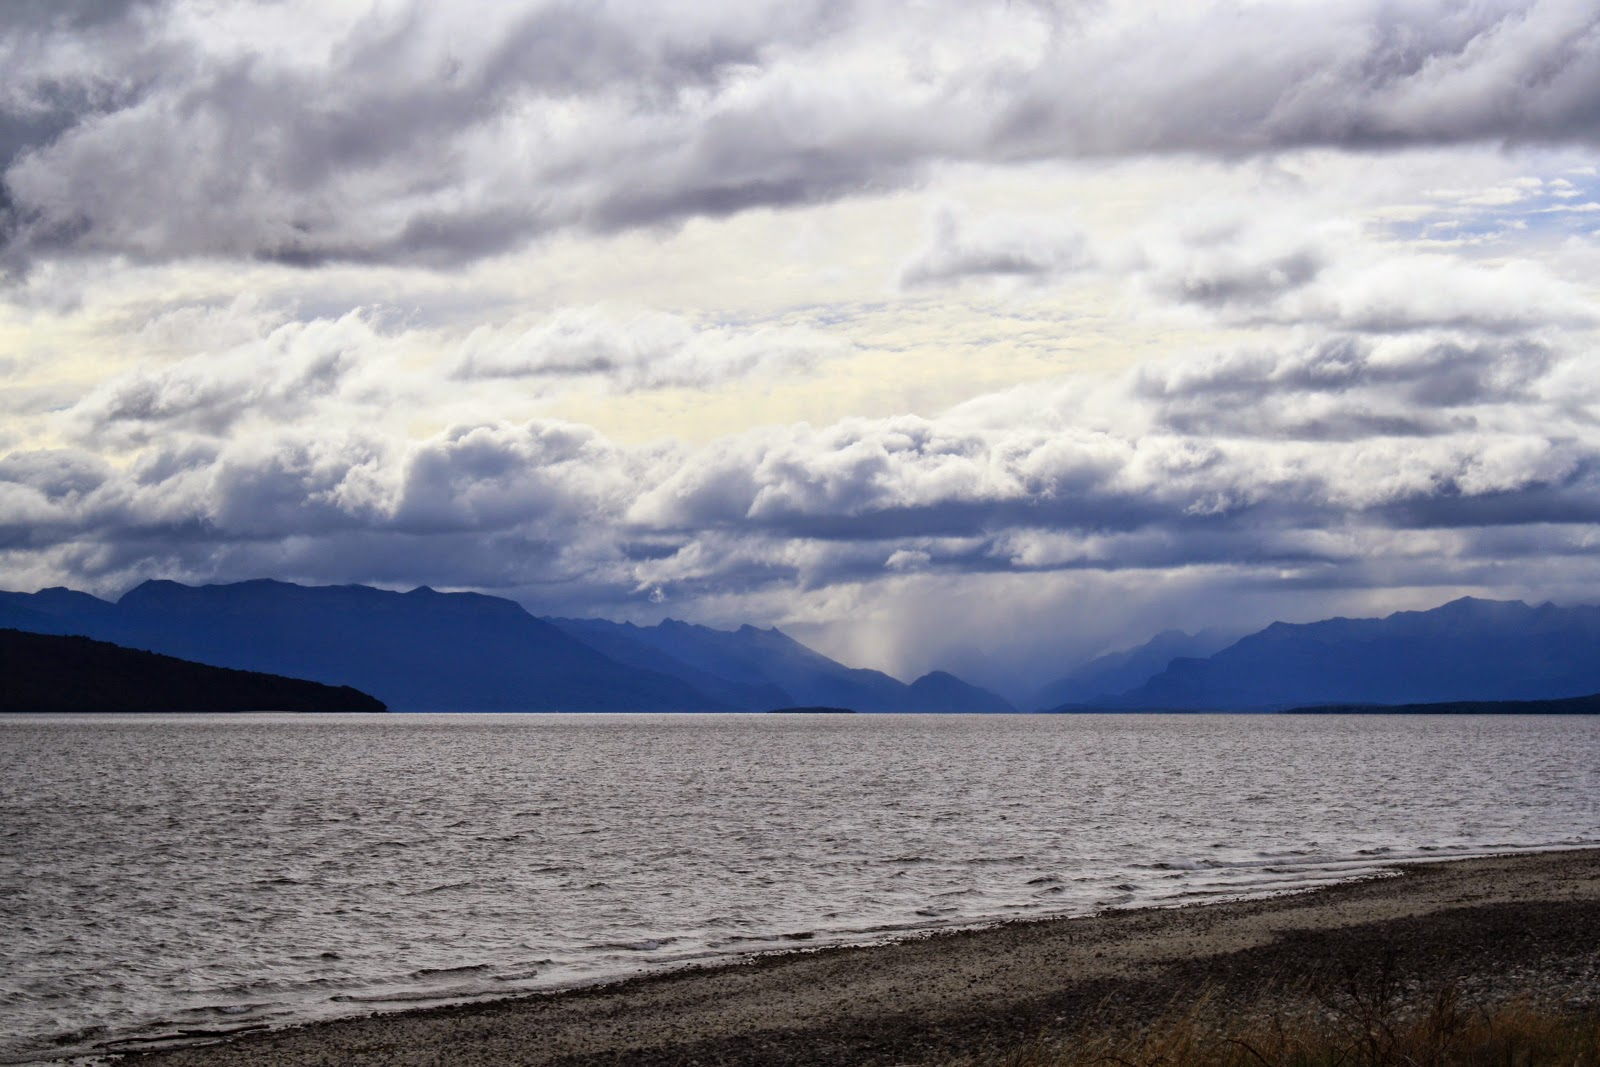 Lake Te Anau, looking cold and grey.